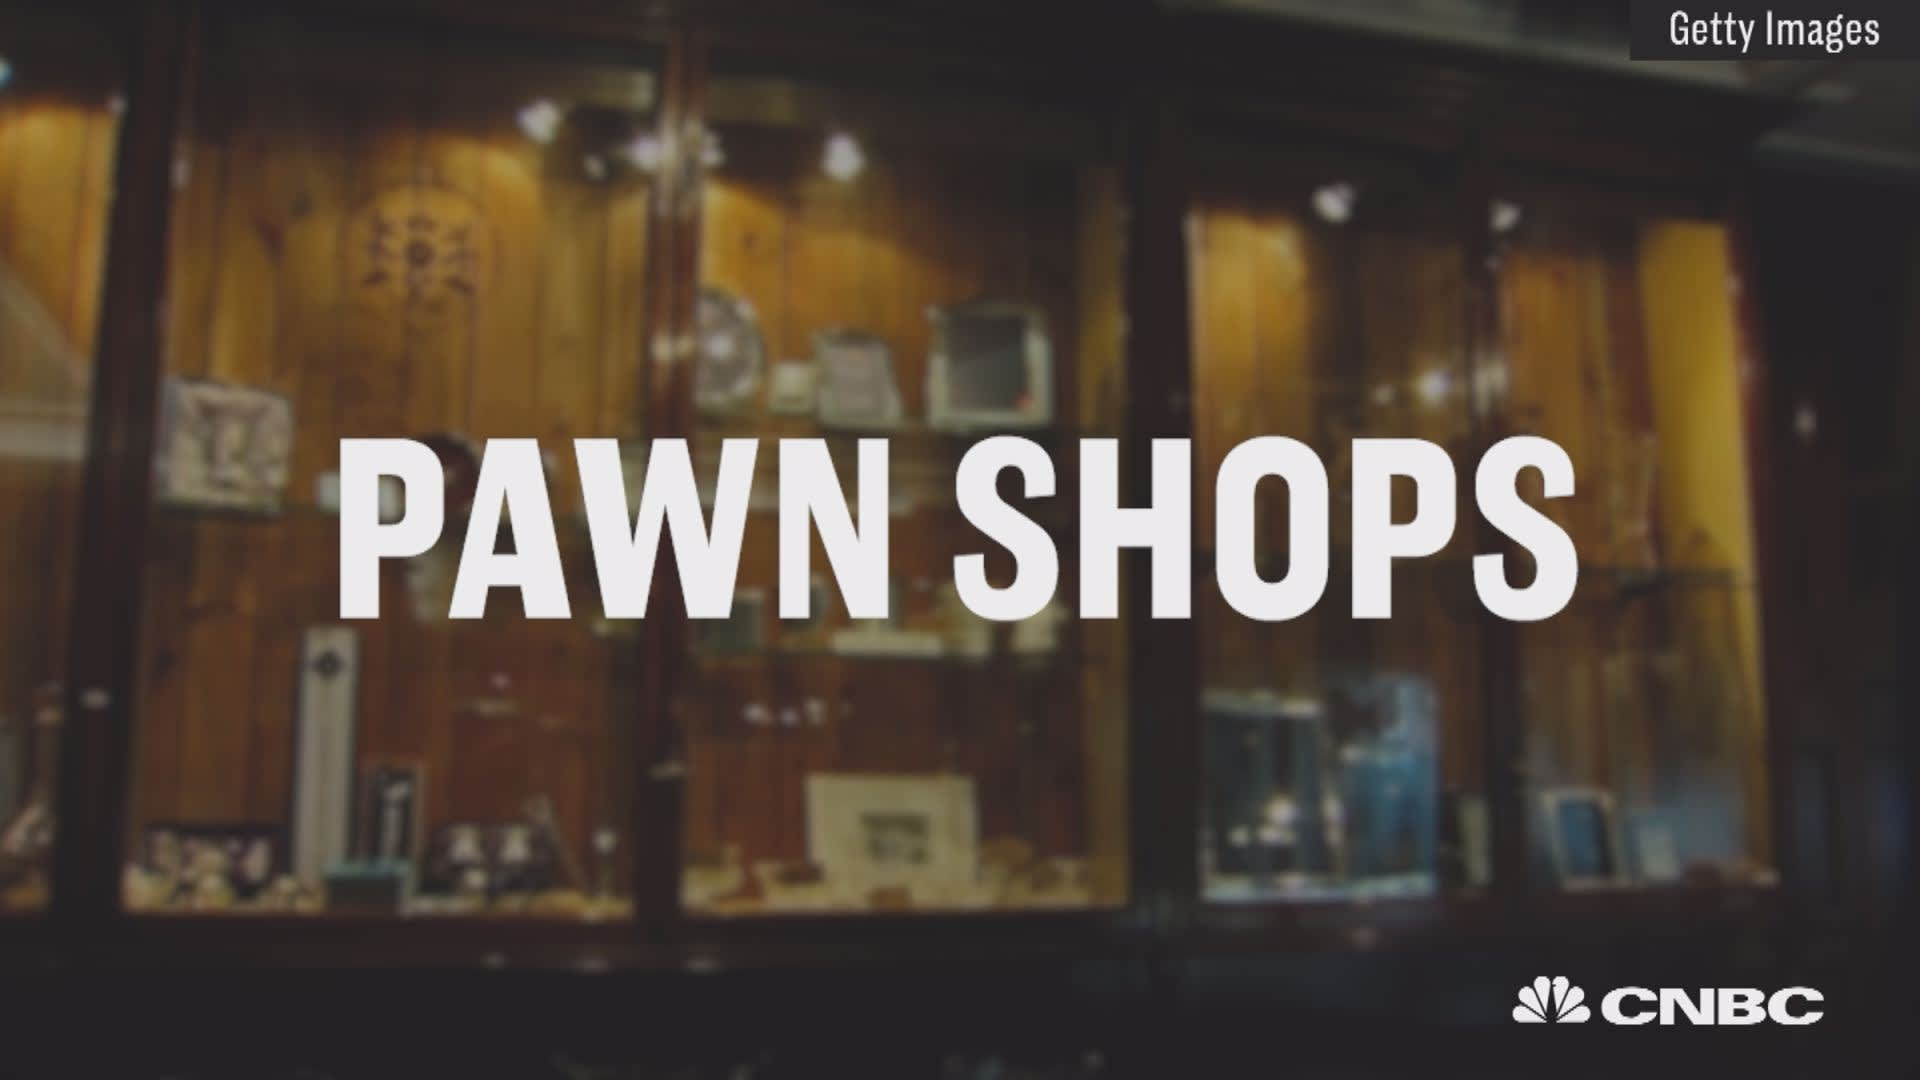 The wealthy are turning to pawn shops to fund their business ideas